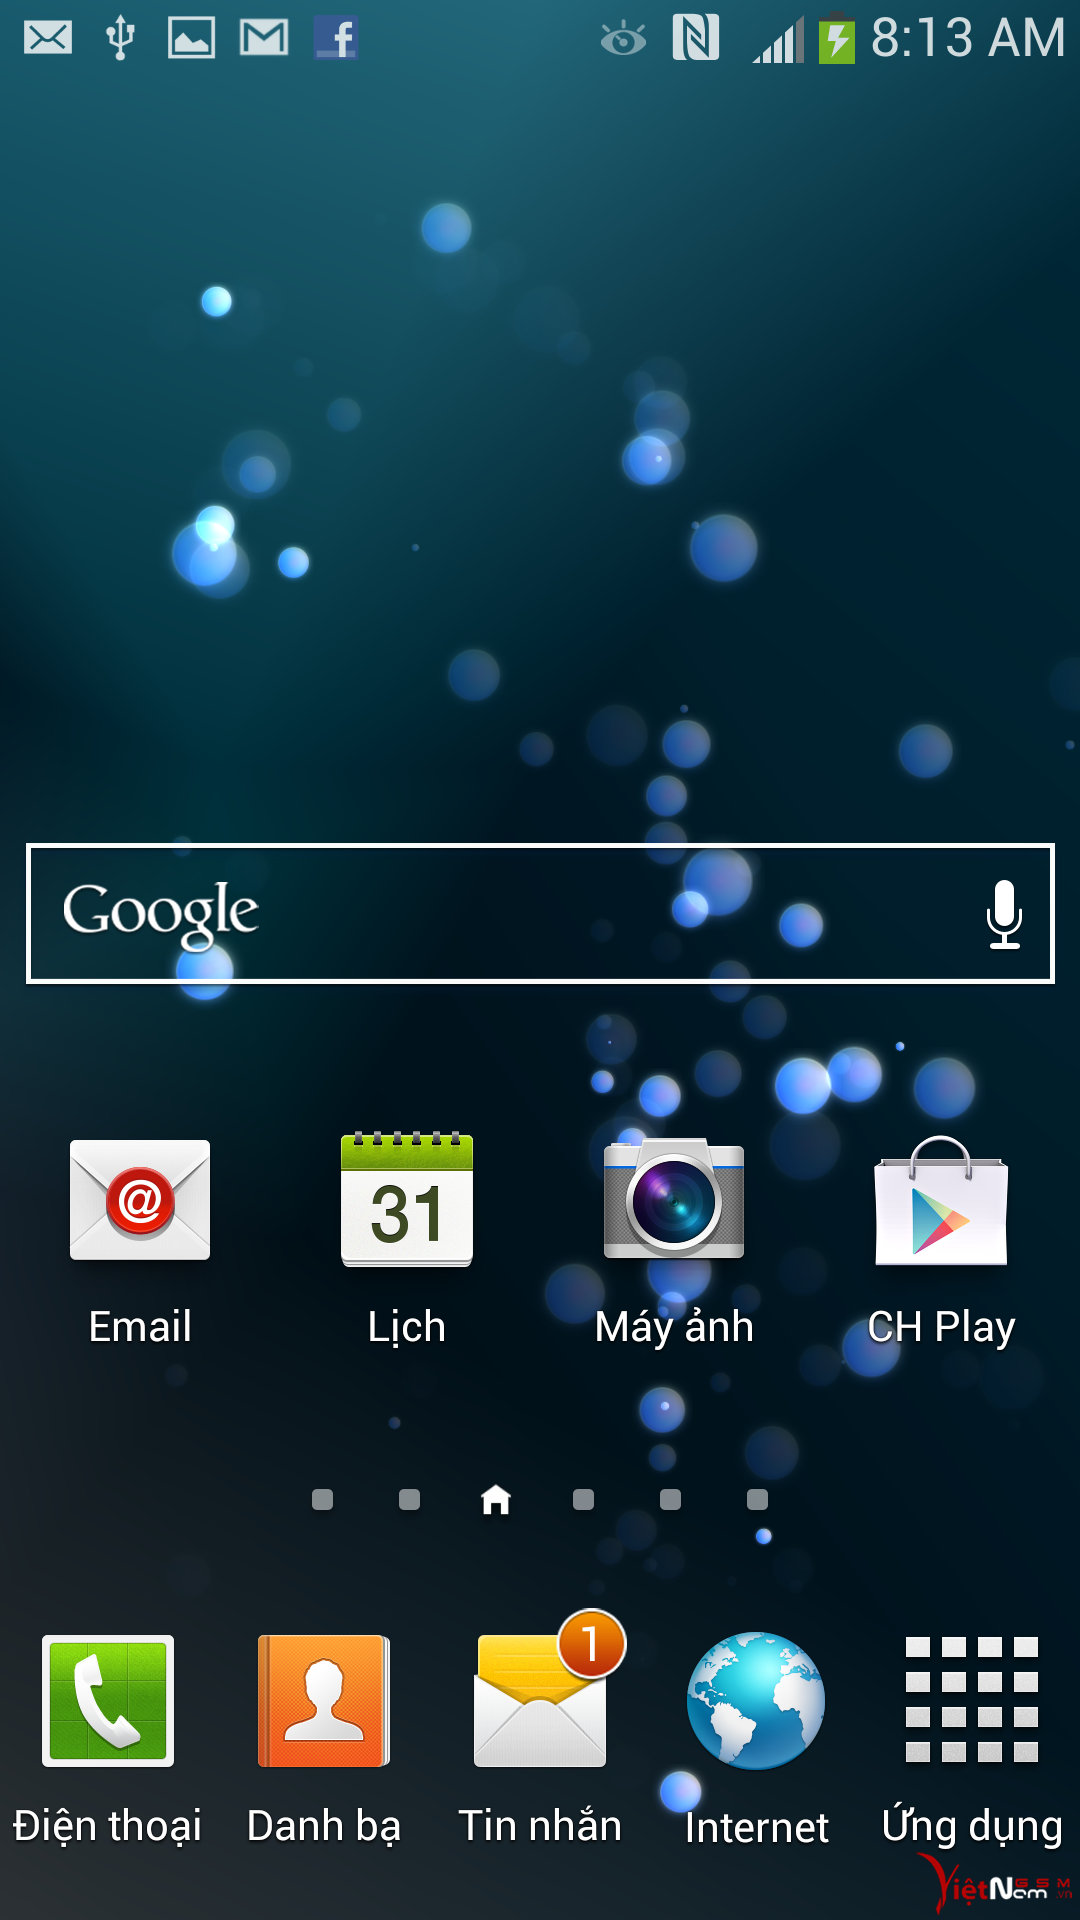 Screenshot_2013-09-03-08-13-09.png